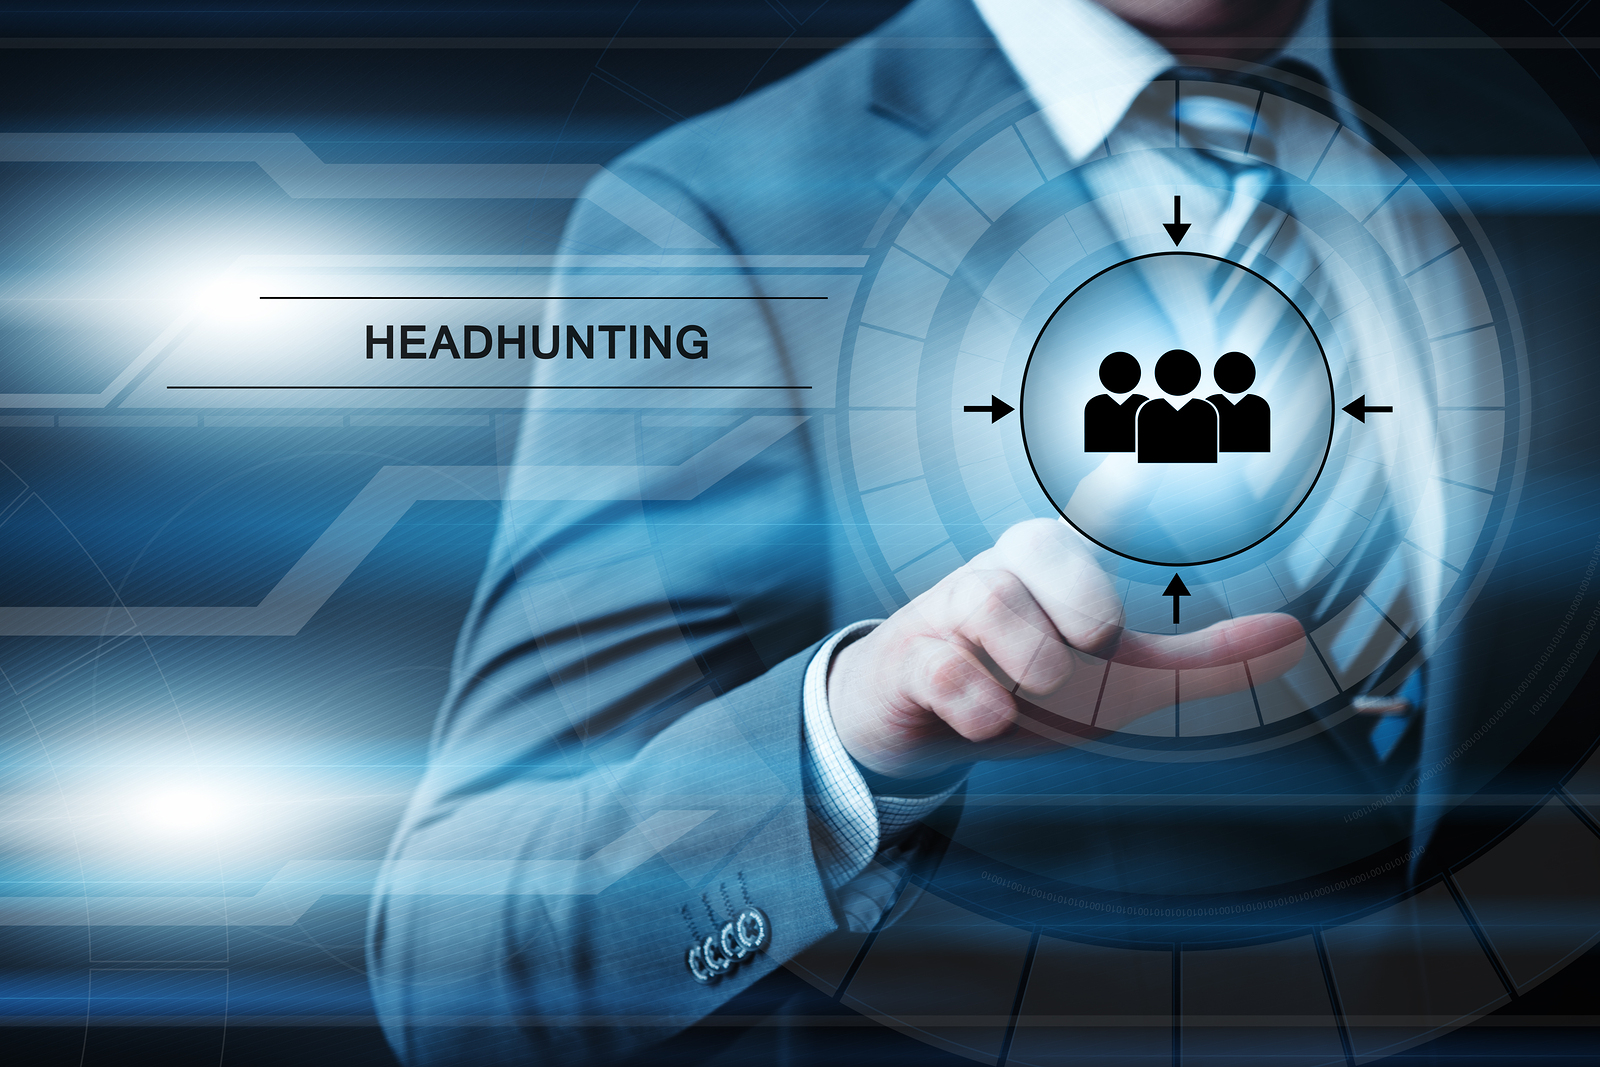 Why Should I Hire a Headhunter to Grow My Company?